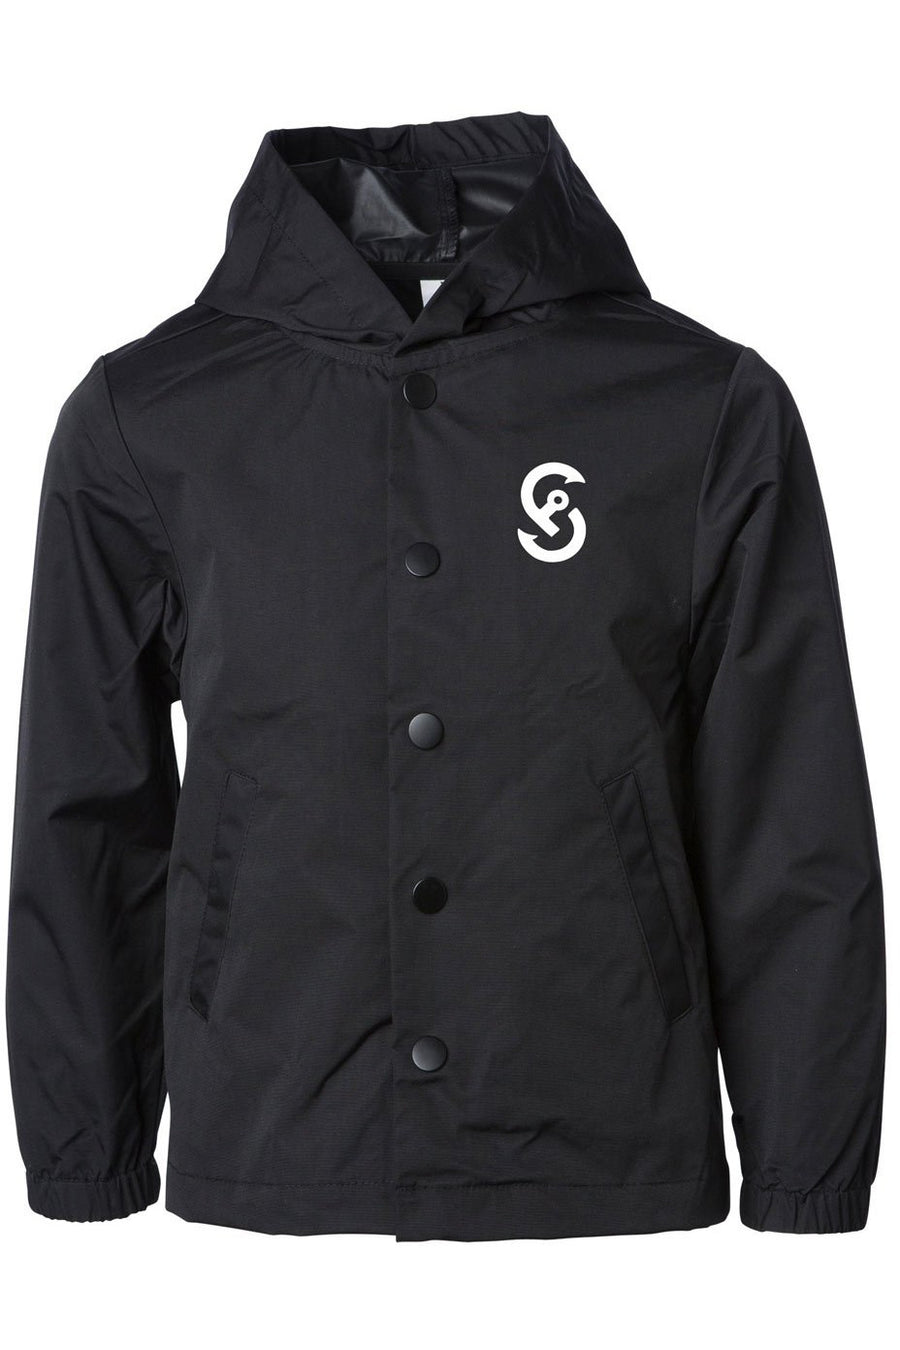 CORE WATER RESISTANT HOODED WINDBREAKER COACHES JACKET